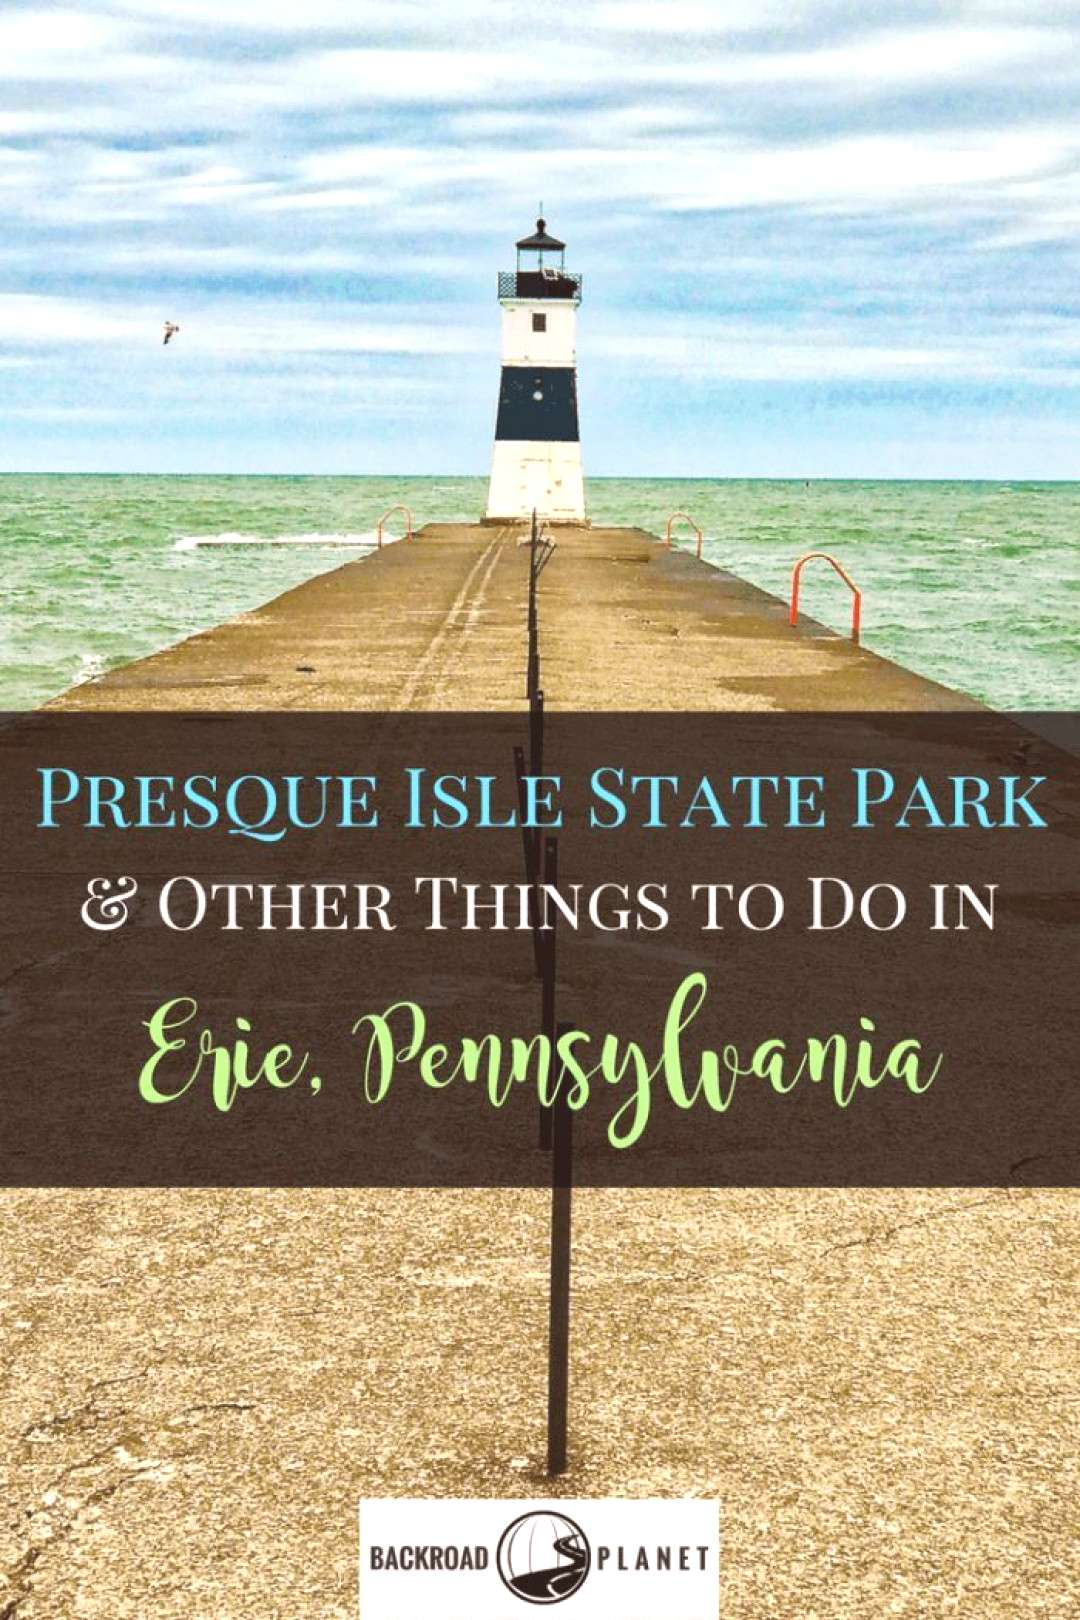 Presque Isle State Park amp Other Things to Do in Erie, PA USA Even when on a tight schedule, dont m